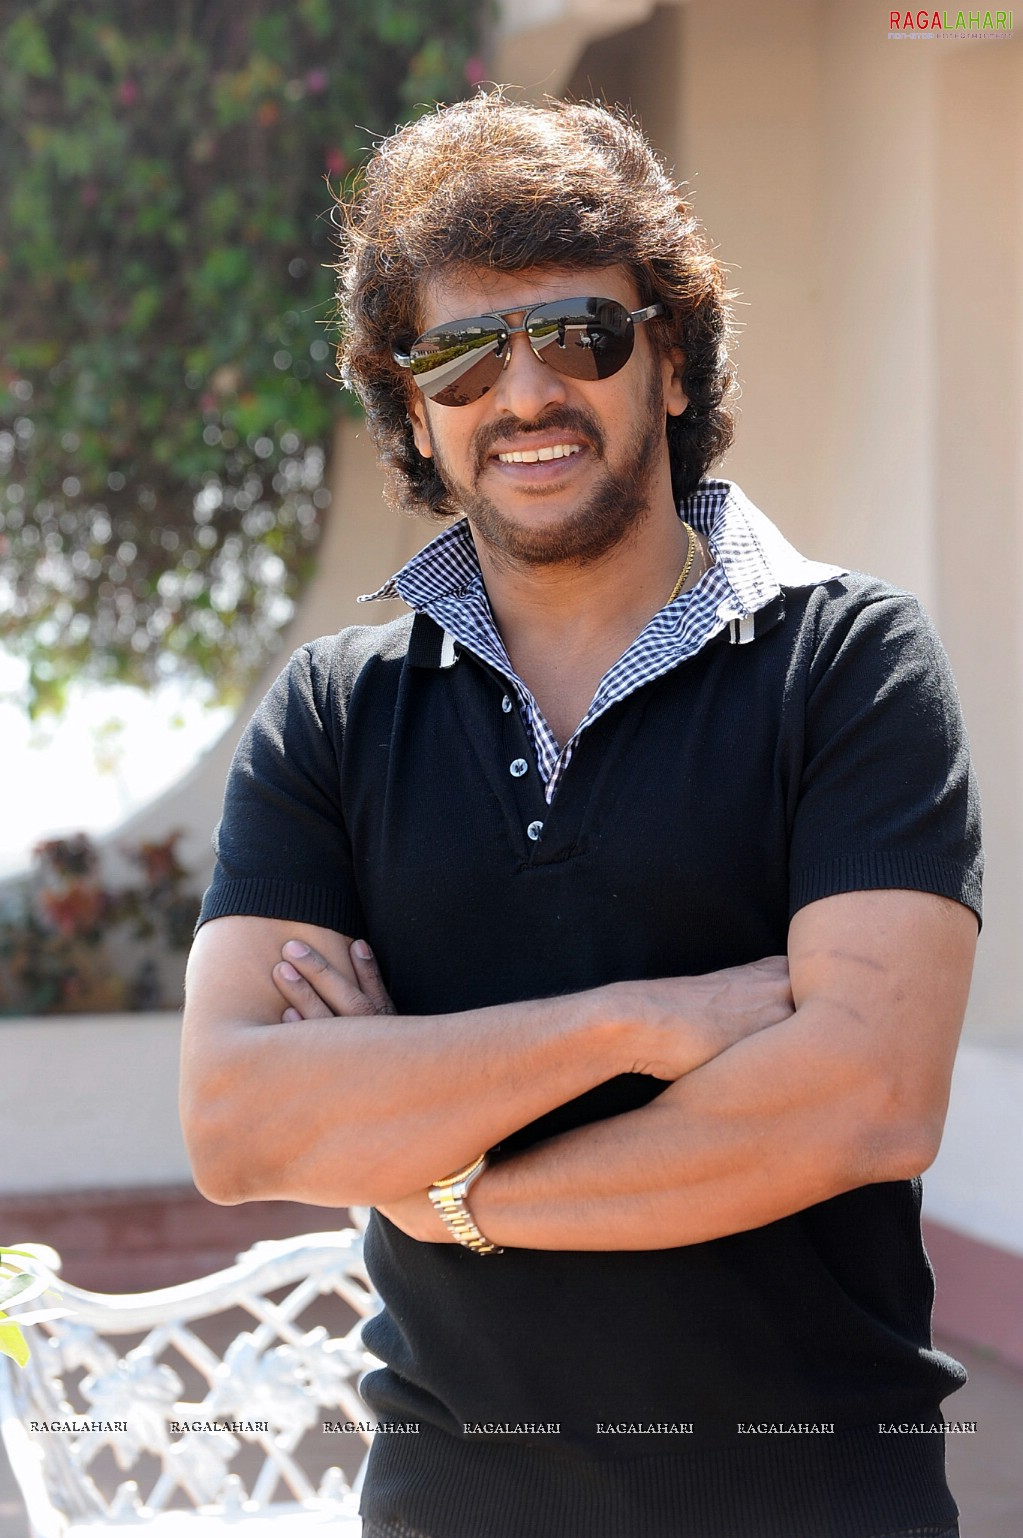 'Upendra' sequel 'Upendra 2' is coming soon